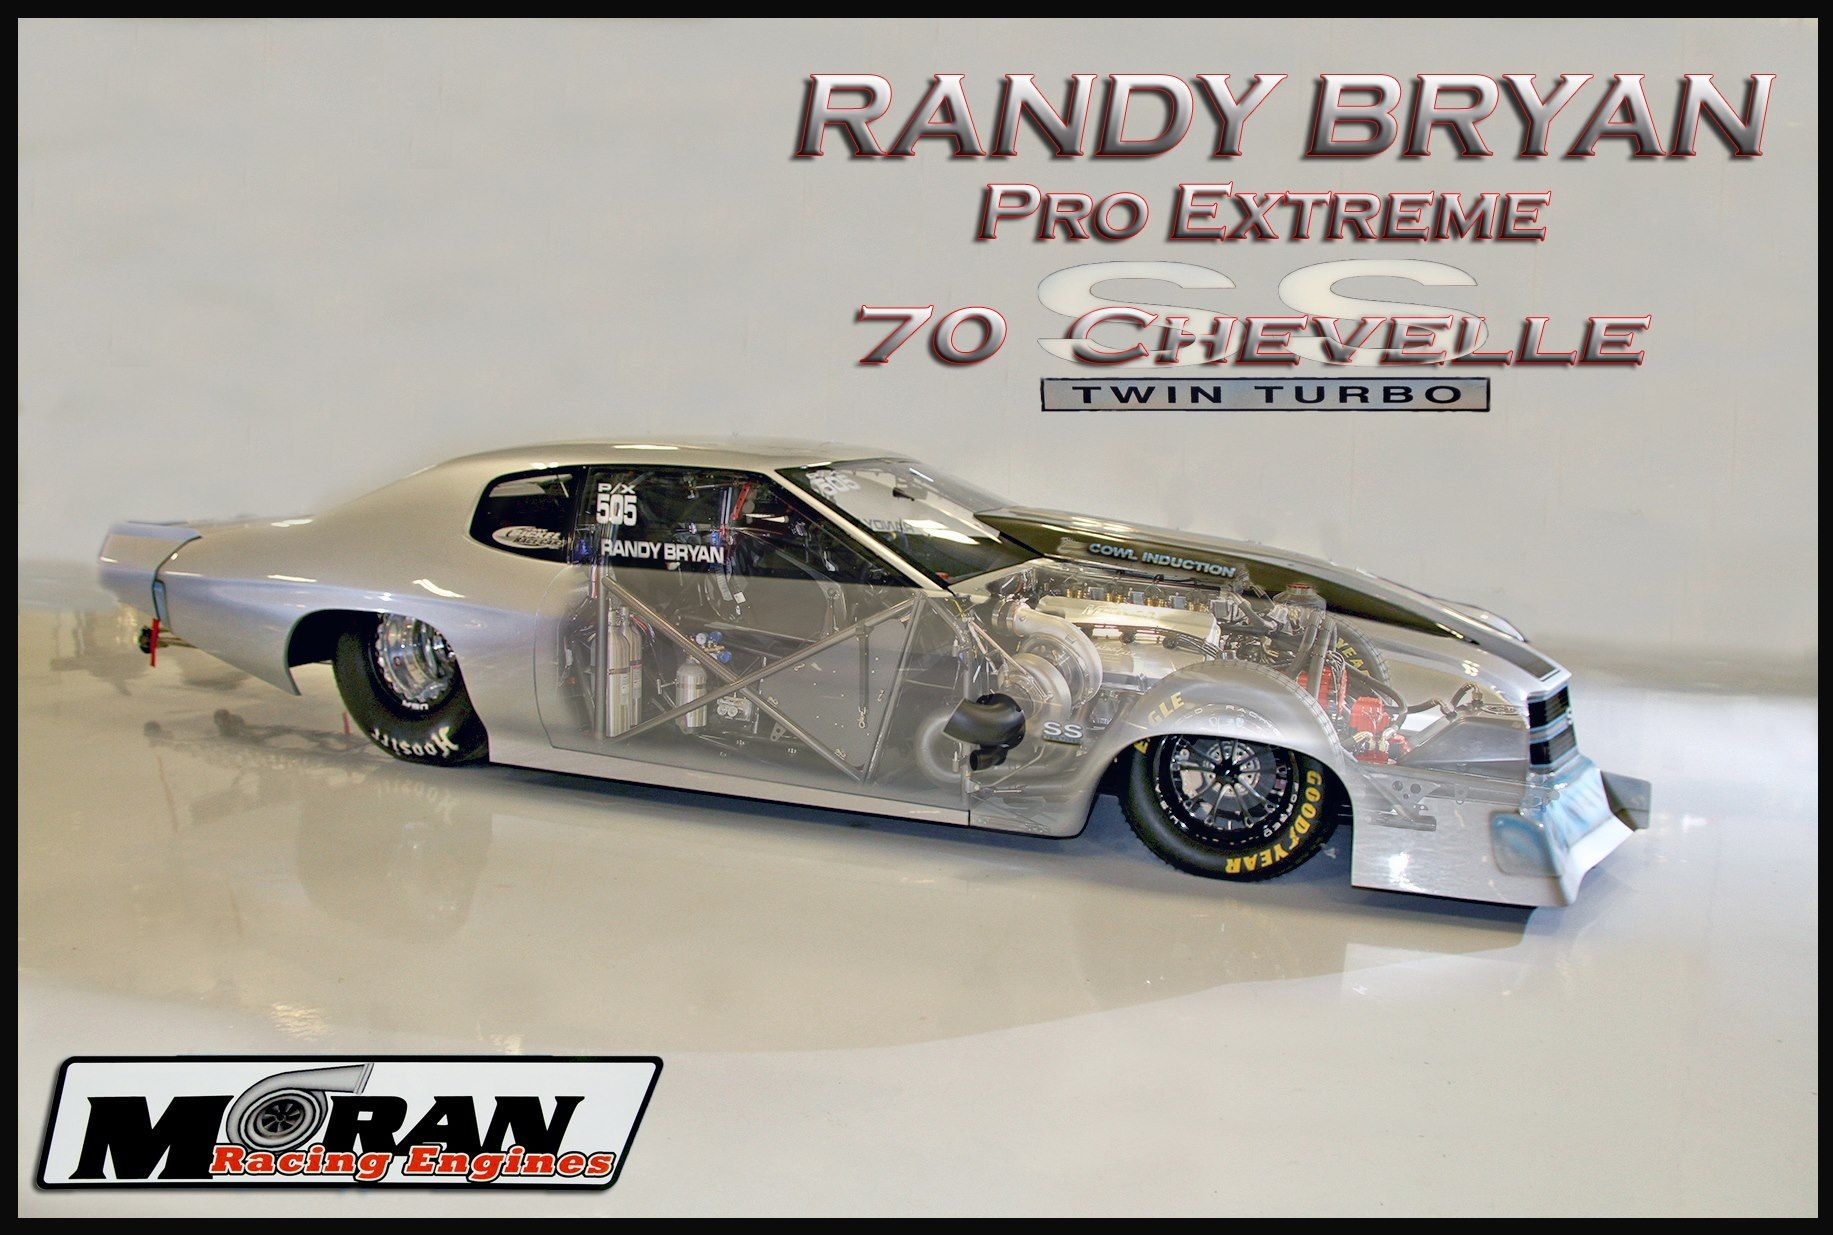 Randy Bryan's new PX Turbo '70 Chevelle from Jerry Bickel